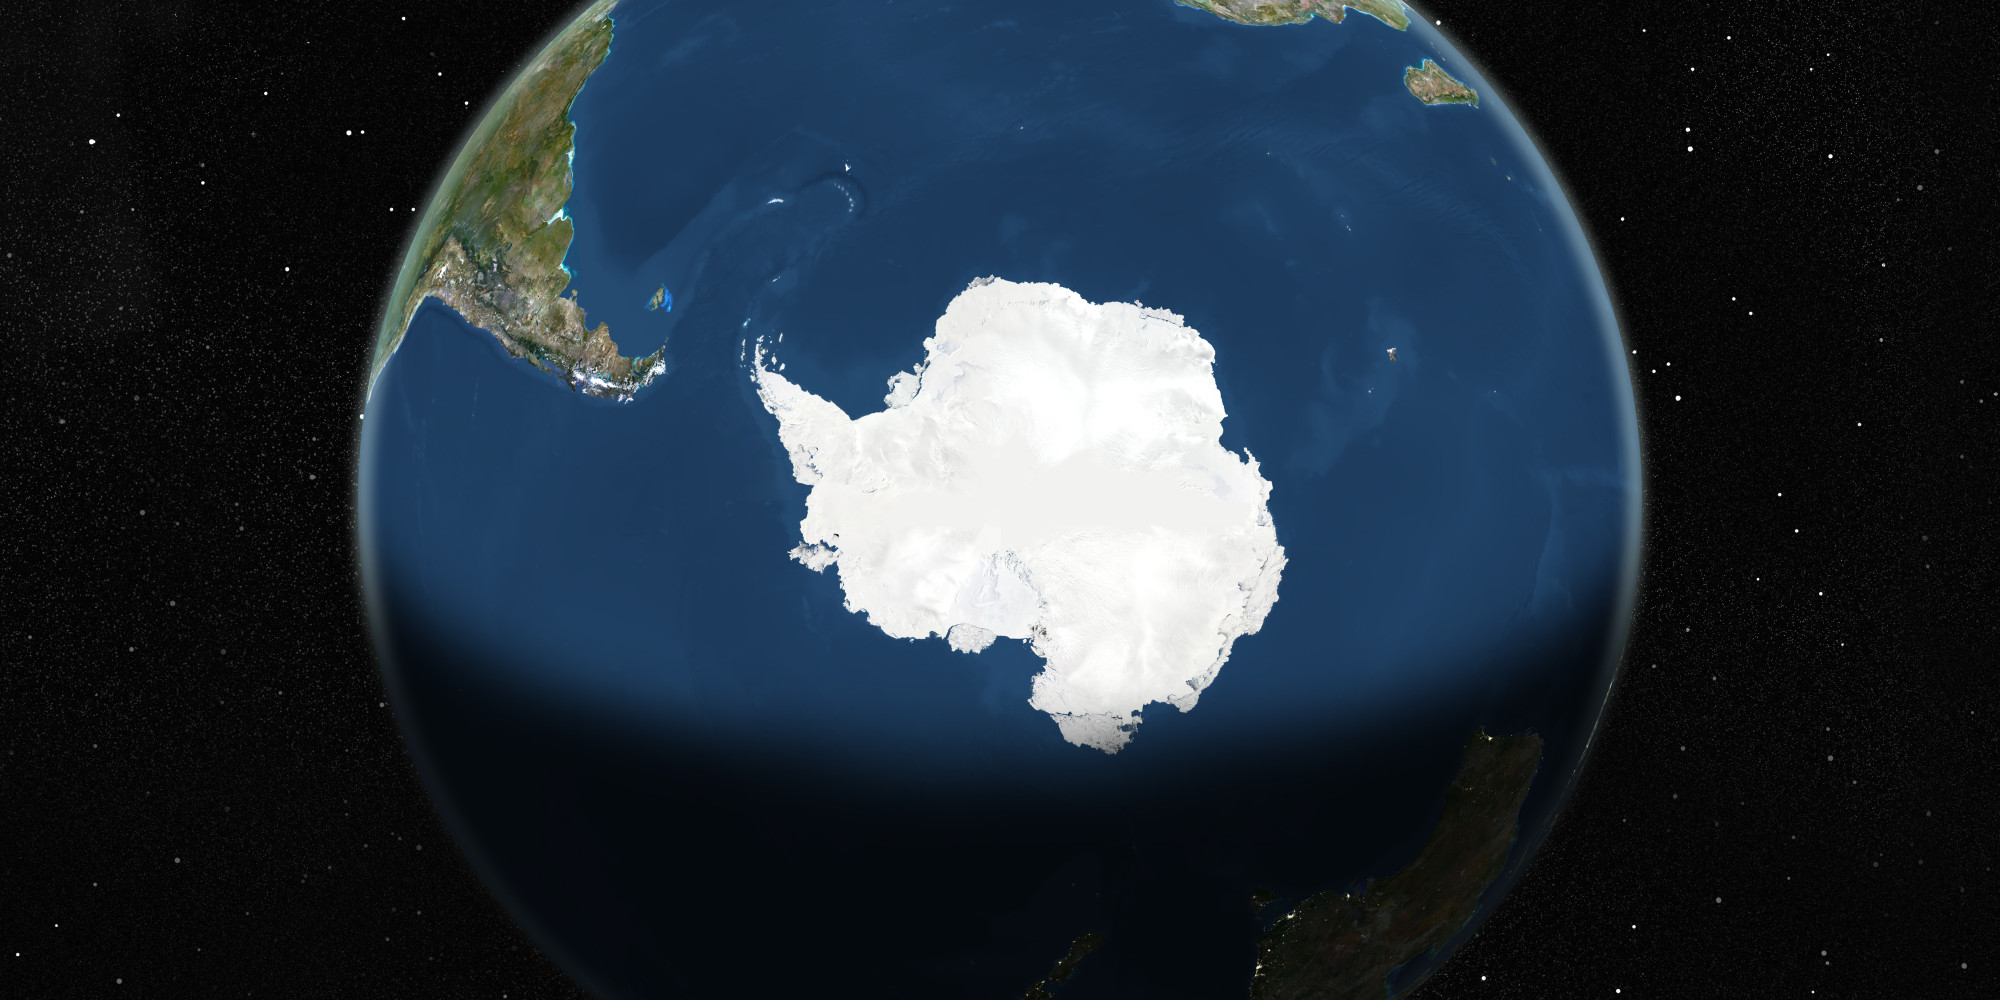 nasa antarctica - photo #23